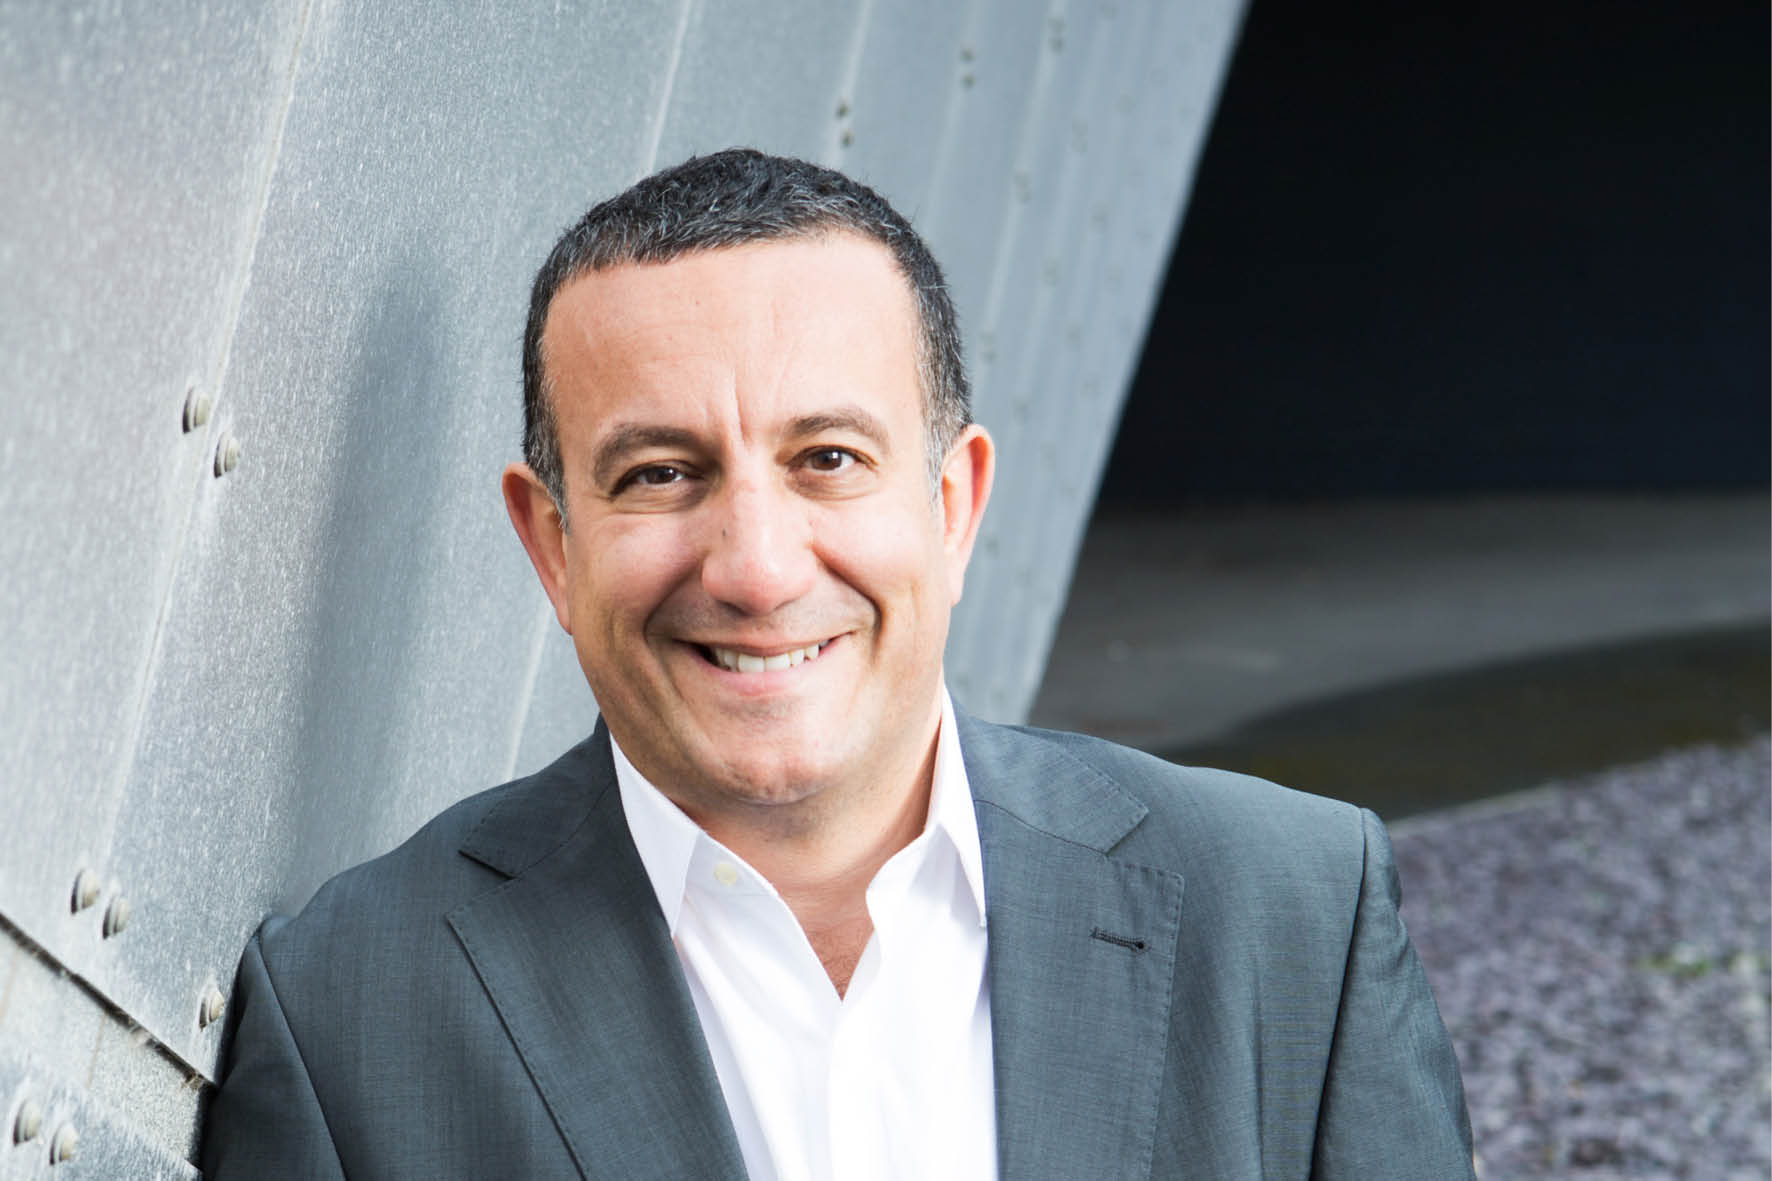 Daniel Finestein - Co-founder and managing partner